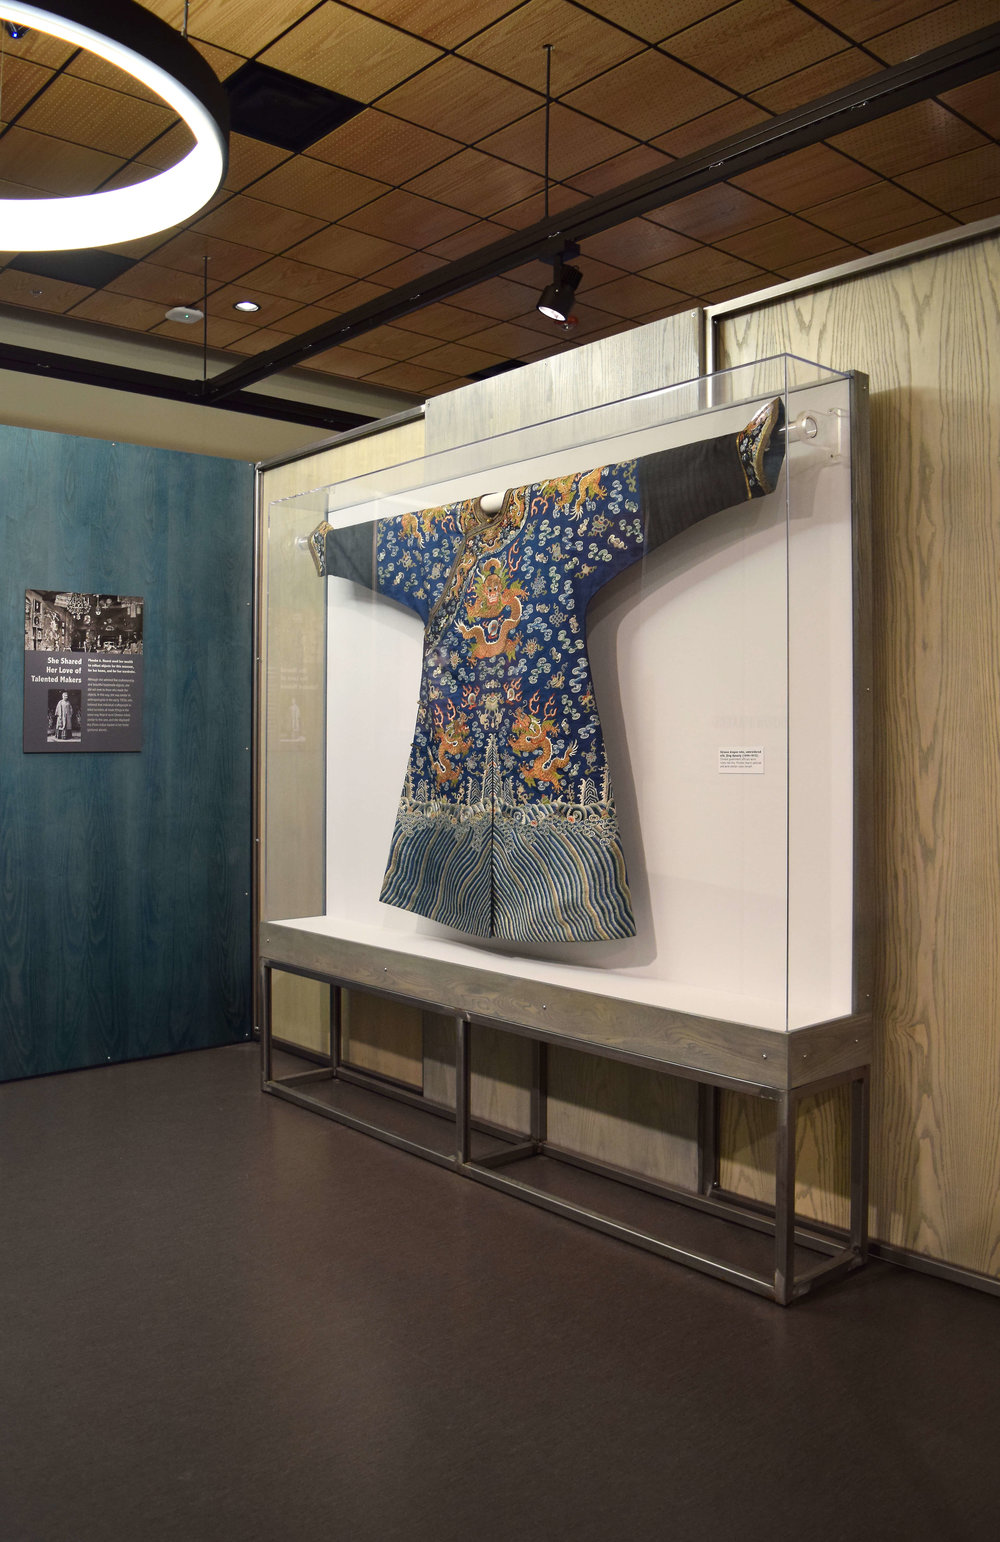 10-Phoebe A. Hearst Museum of Anthropology-The Sibbett Group-Robe-Douglas Donaldson-Natalie Horvath.jpg